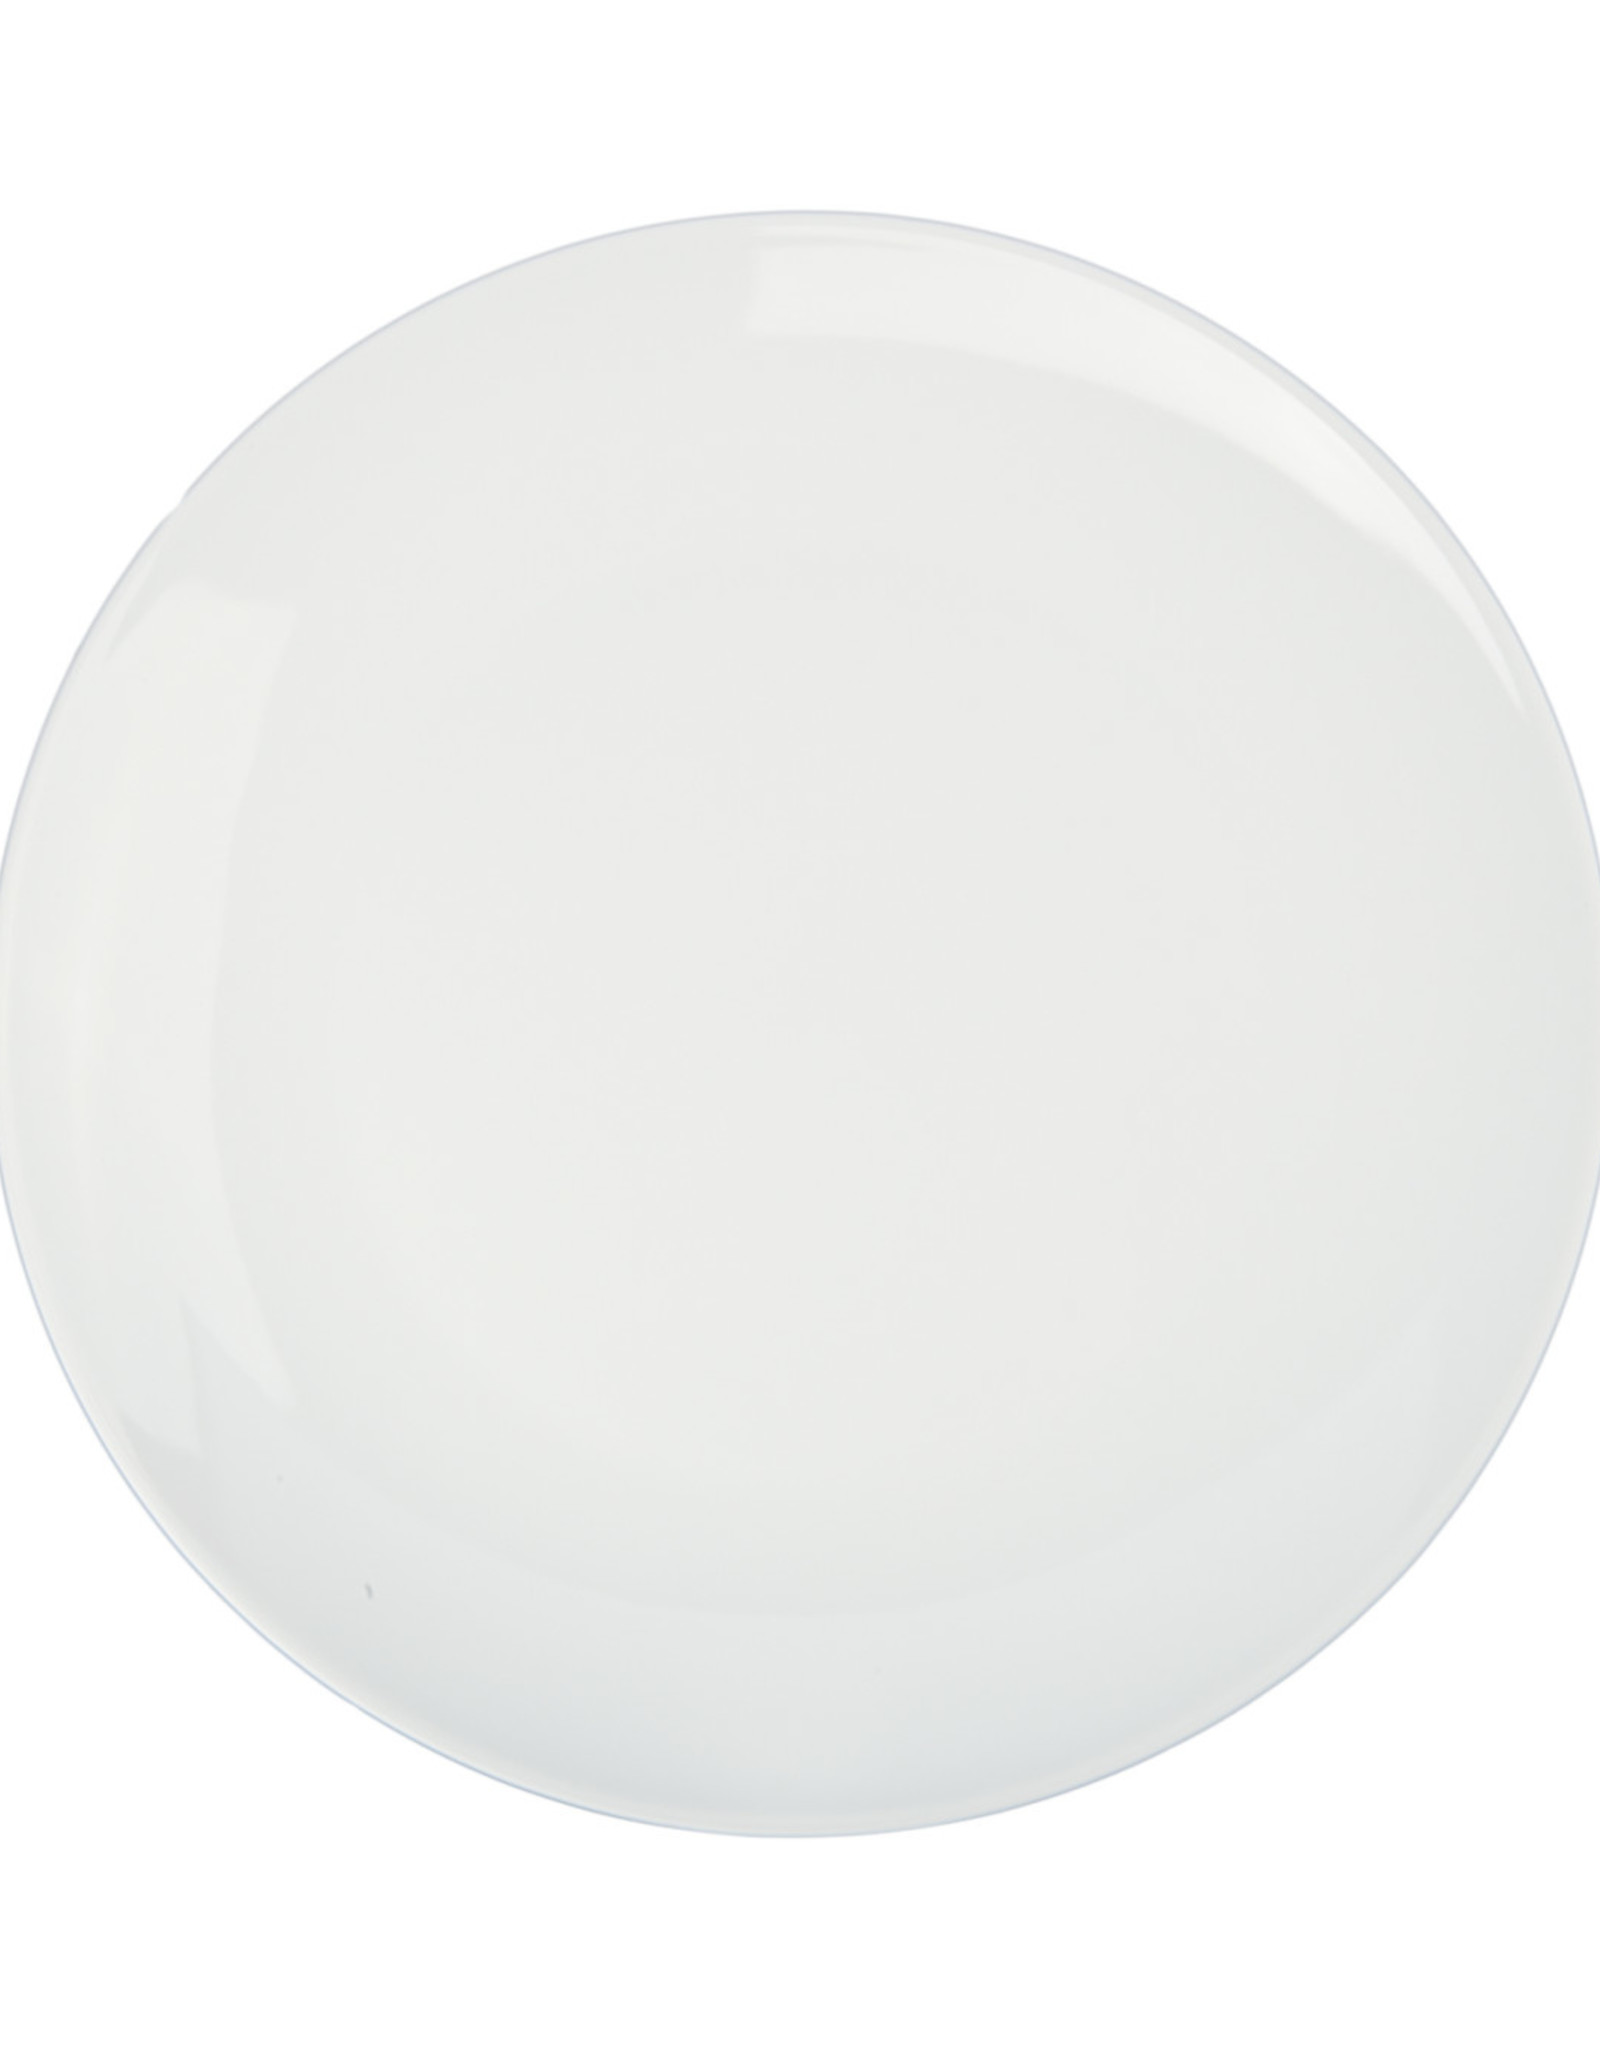 PLATE COUPE DINNER 10.5 INCH